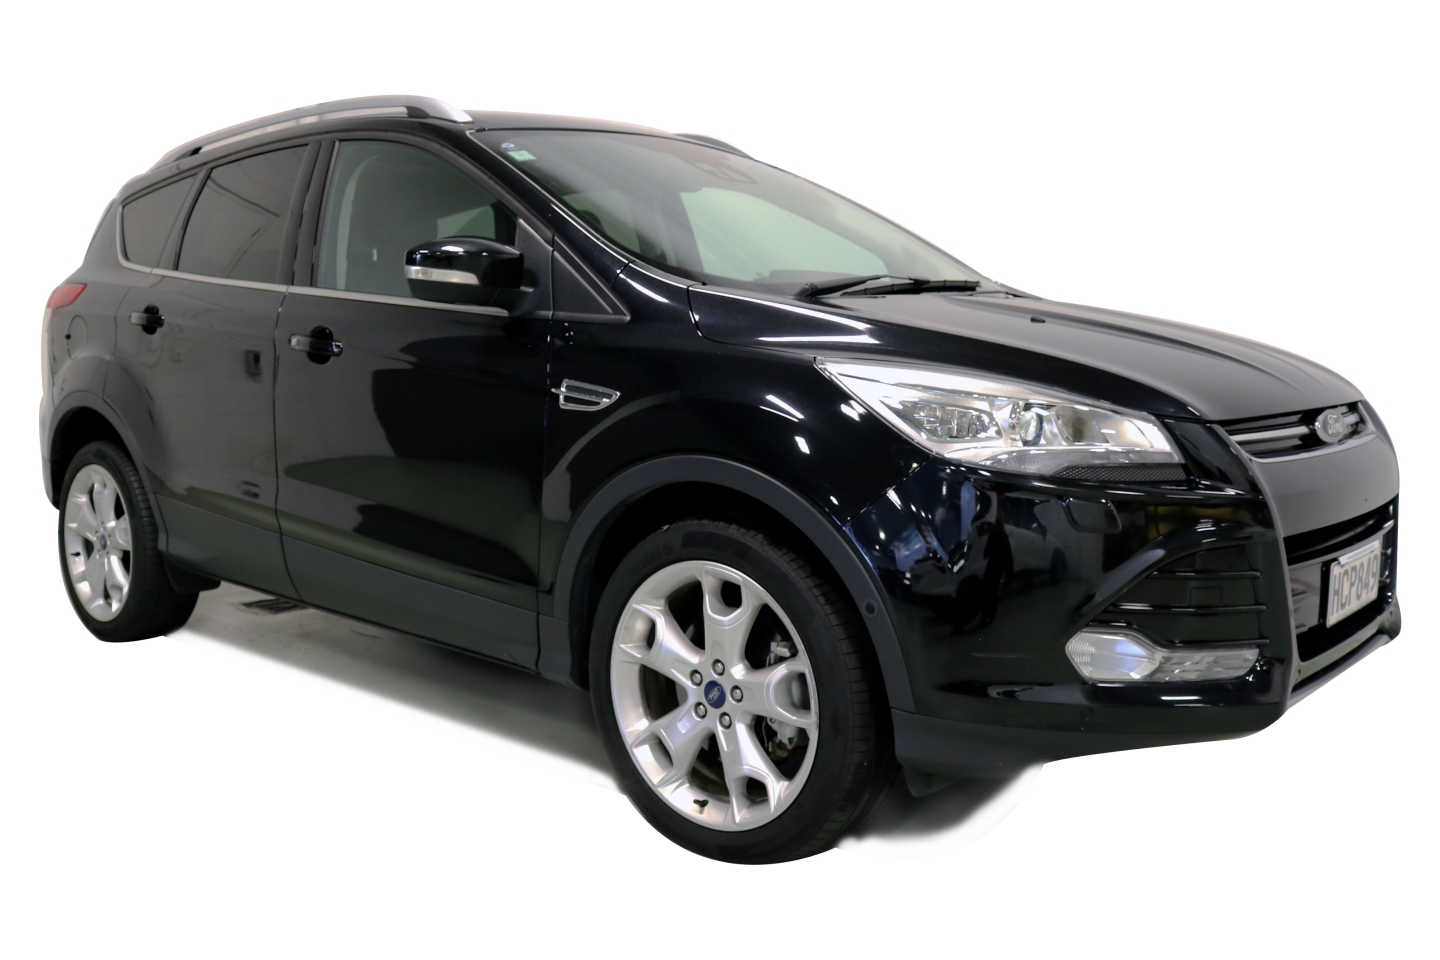 Image Result For Ford Kuga Nz Price